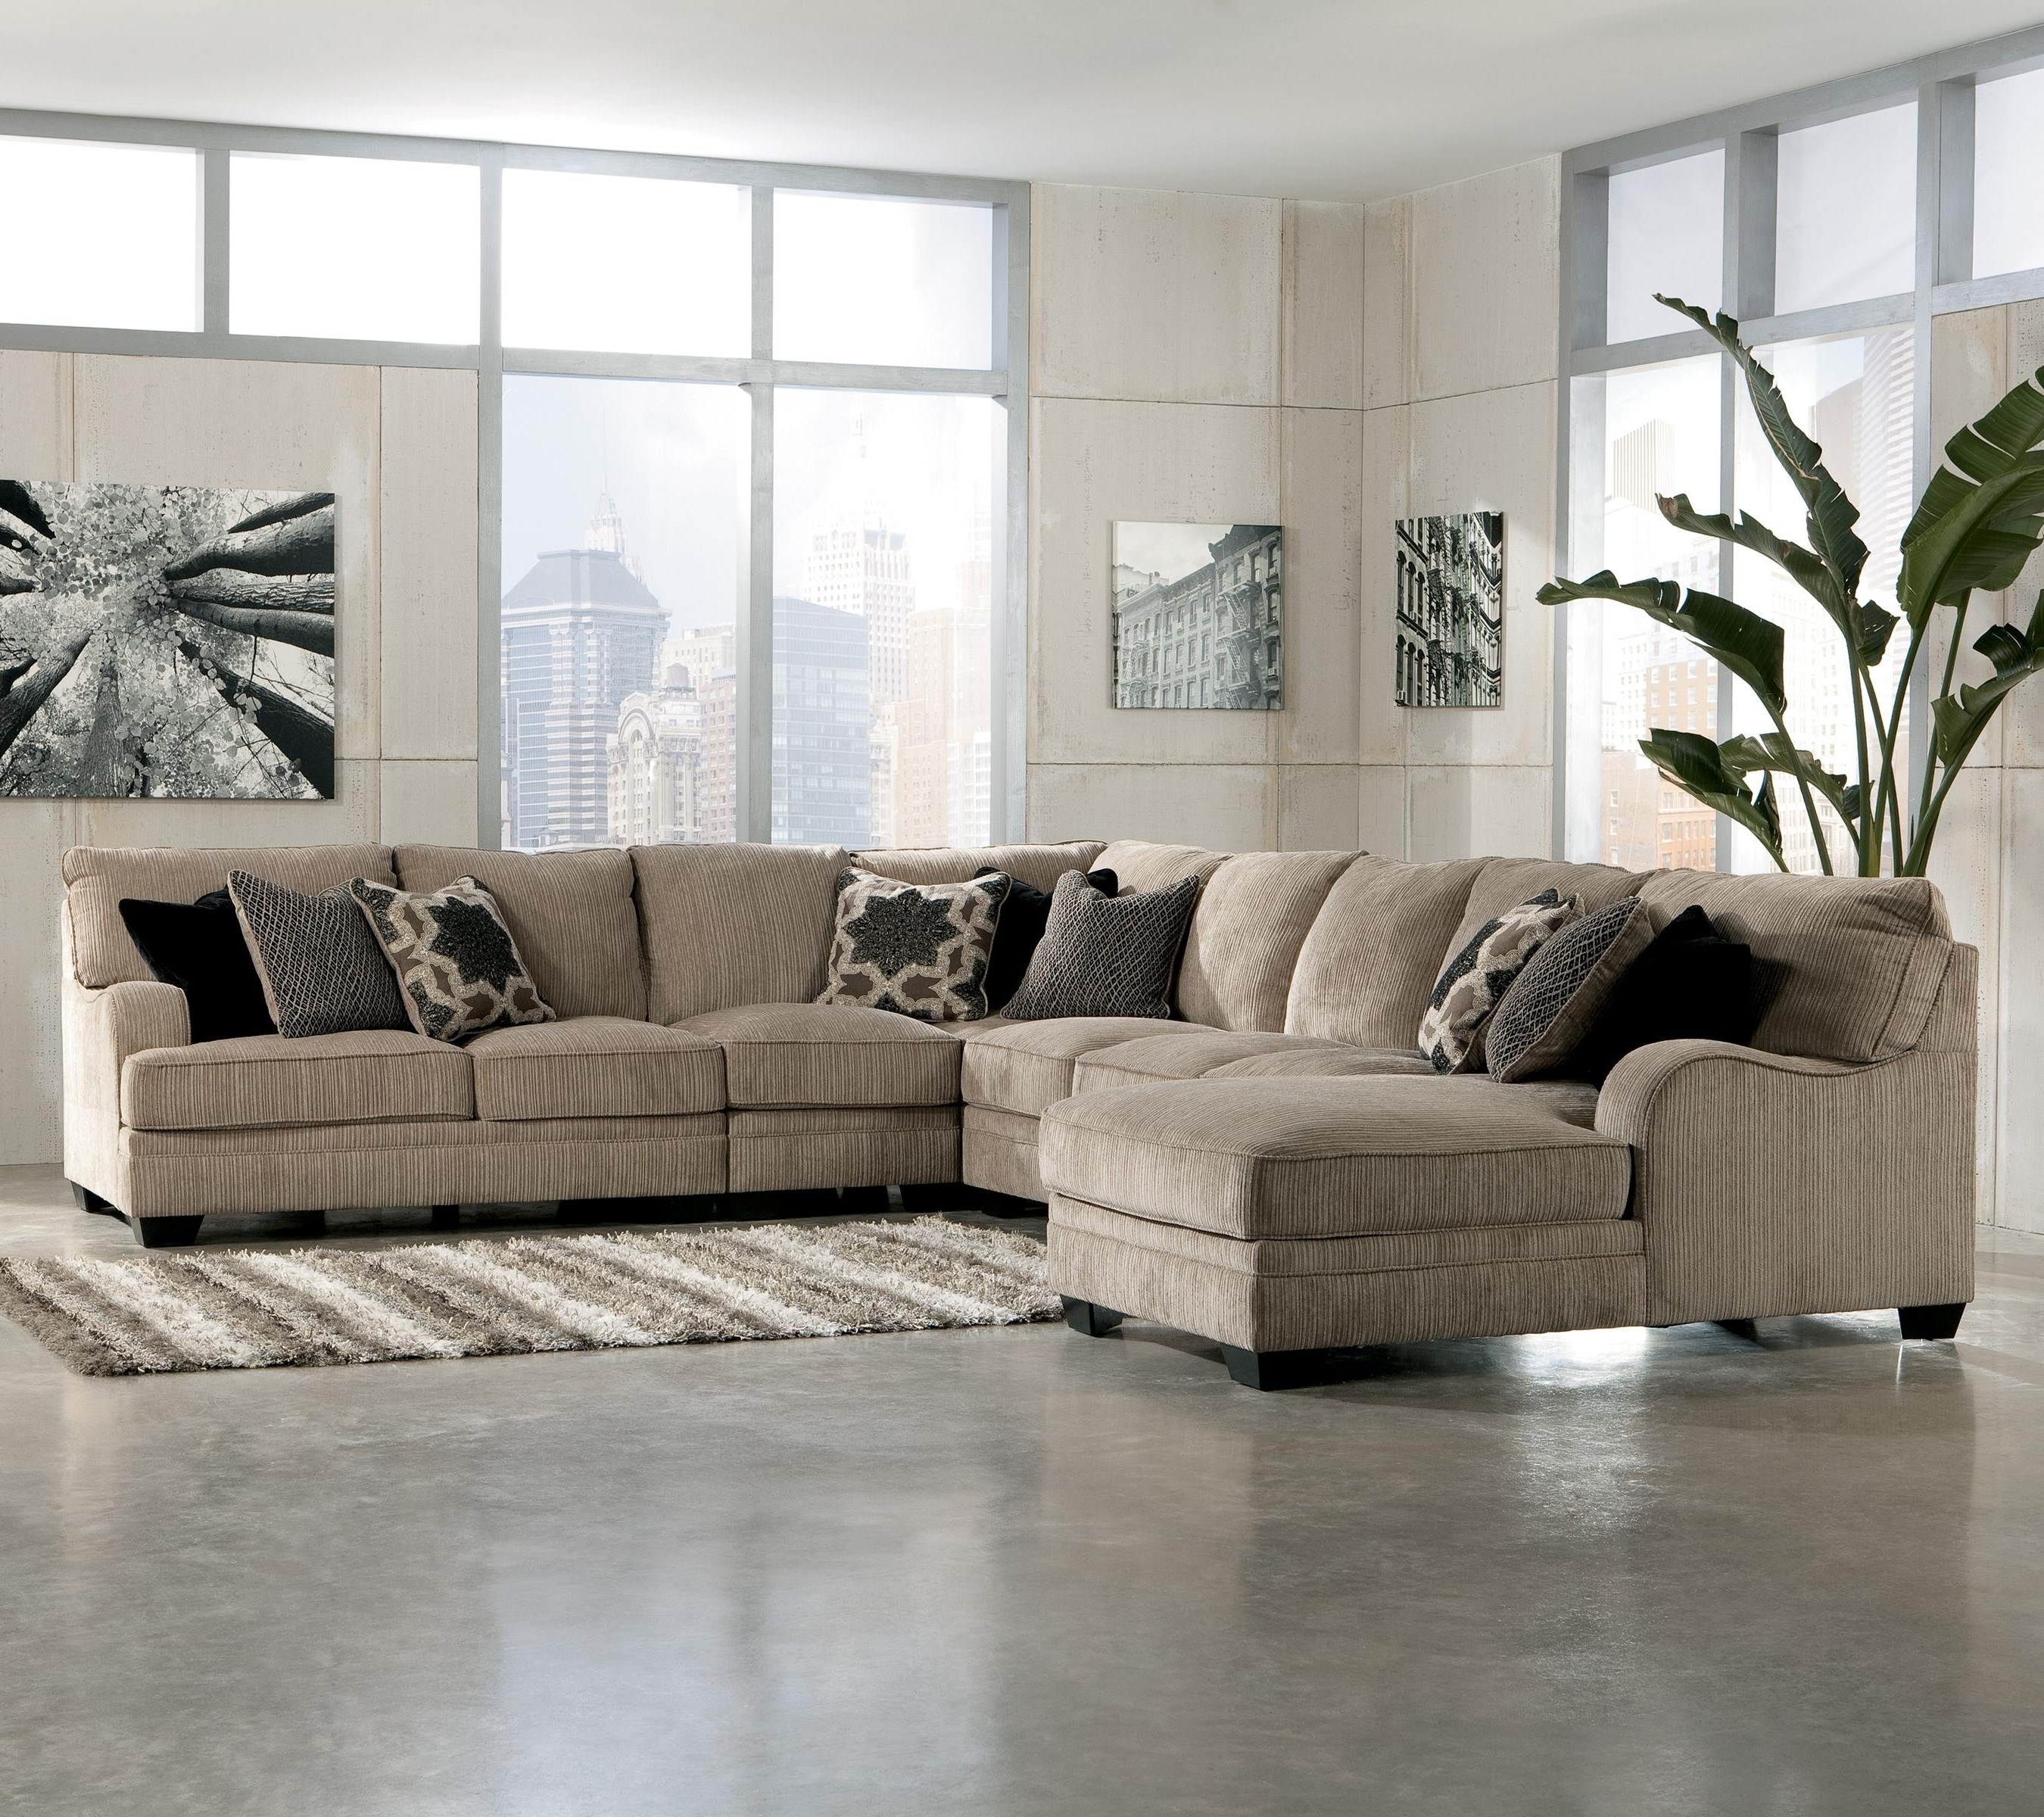 Living Room Sectional: Katisha 4 Piece Sectionalashley Intended For Current Sectional Sofas At Ashley Furniture (View 9 of 20)